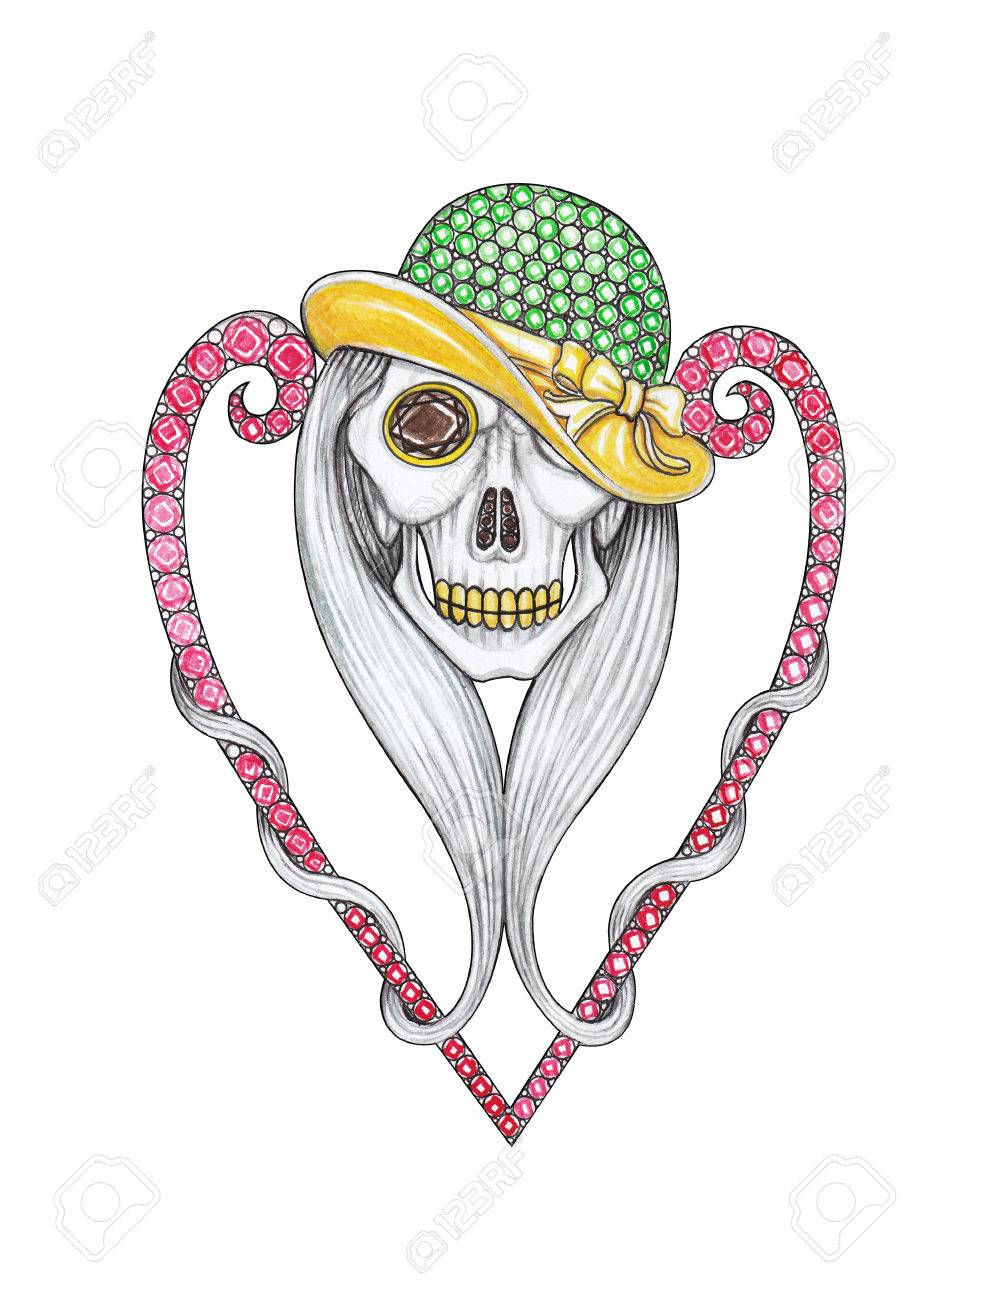 Jewelry Design Skull Mix Heart. Hand Drawing On Paper. Stock Photo ...